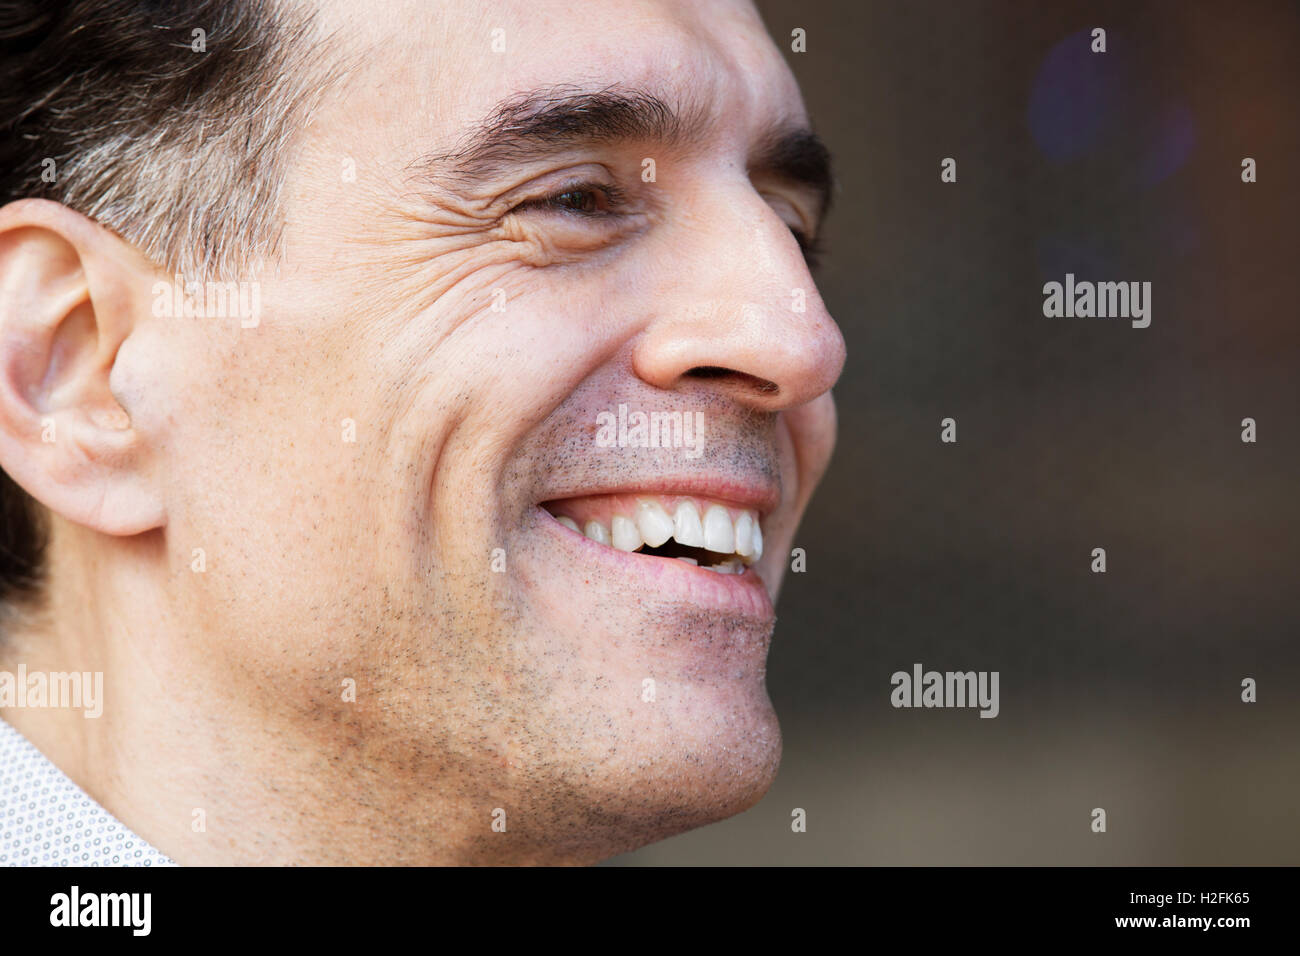 A man with greying hair in a shirt, looking sideways, smiling. - Stock Image